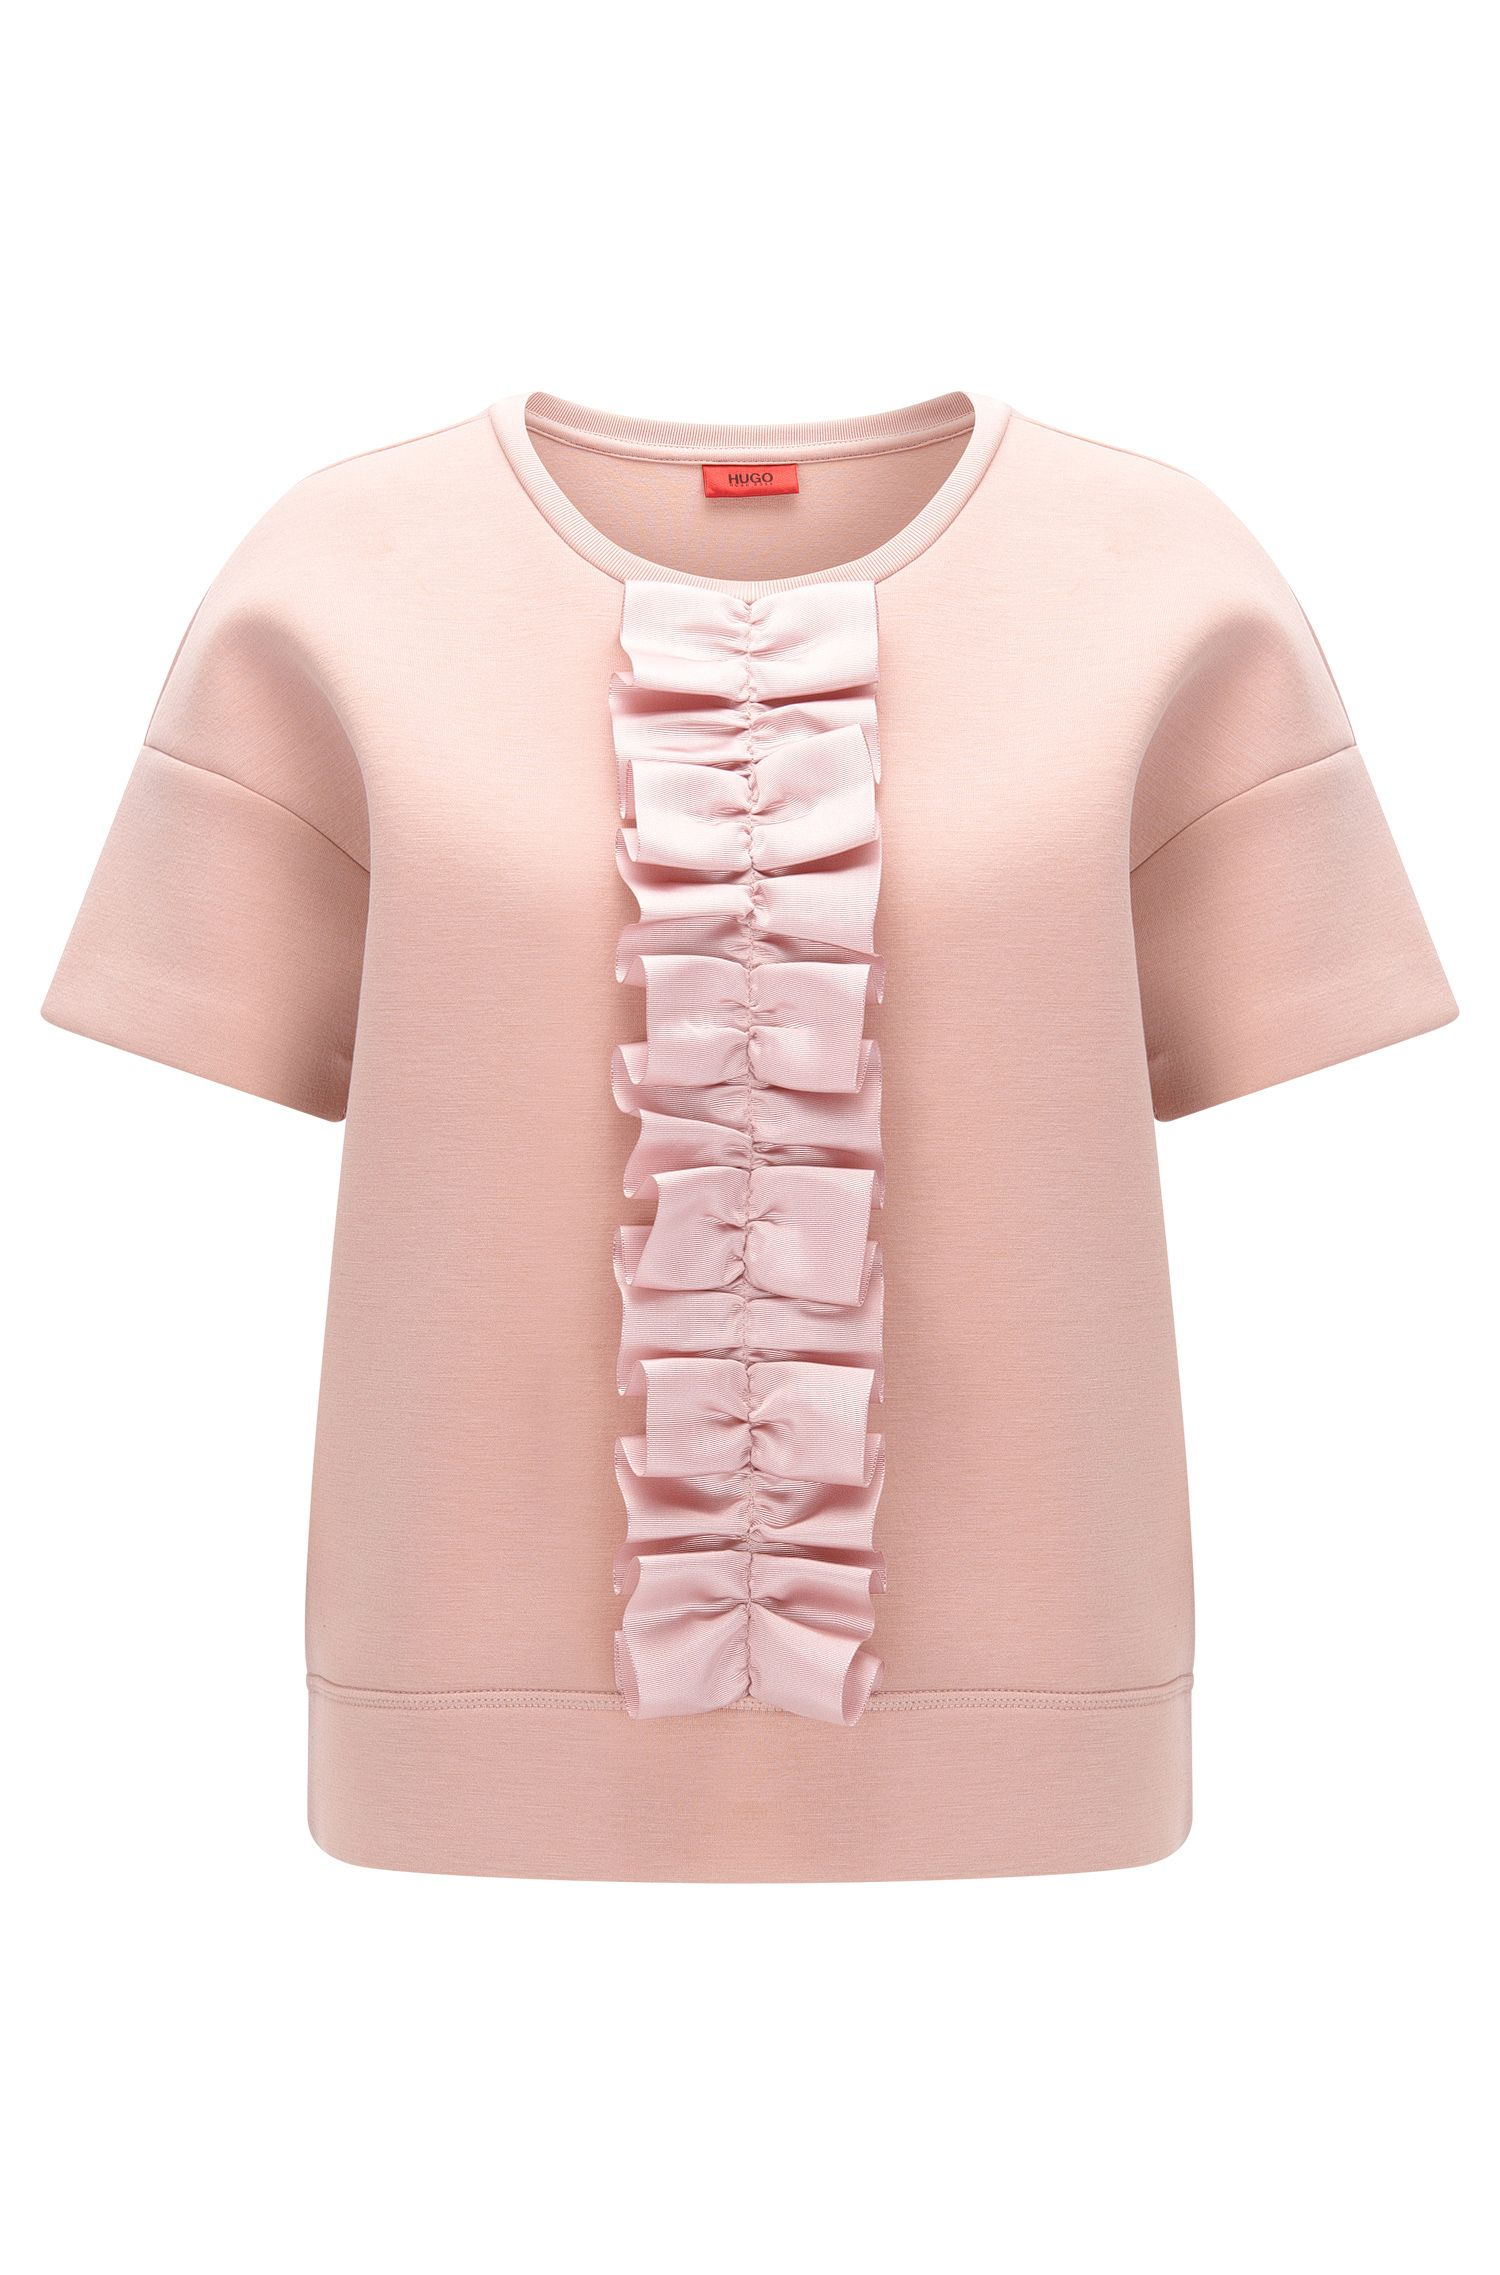 Oversize-fit T-shirt with ruffle tape detail